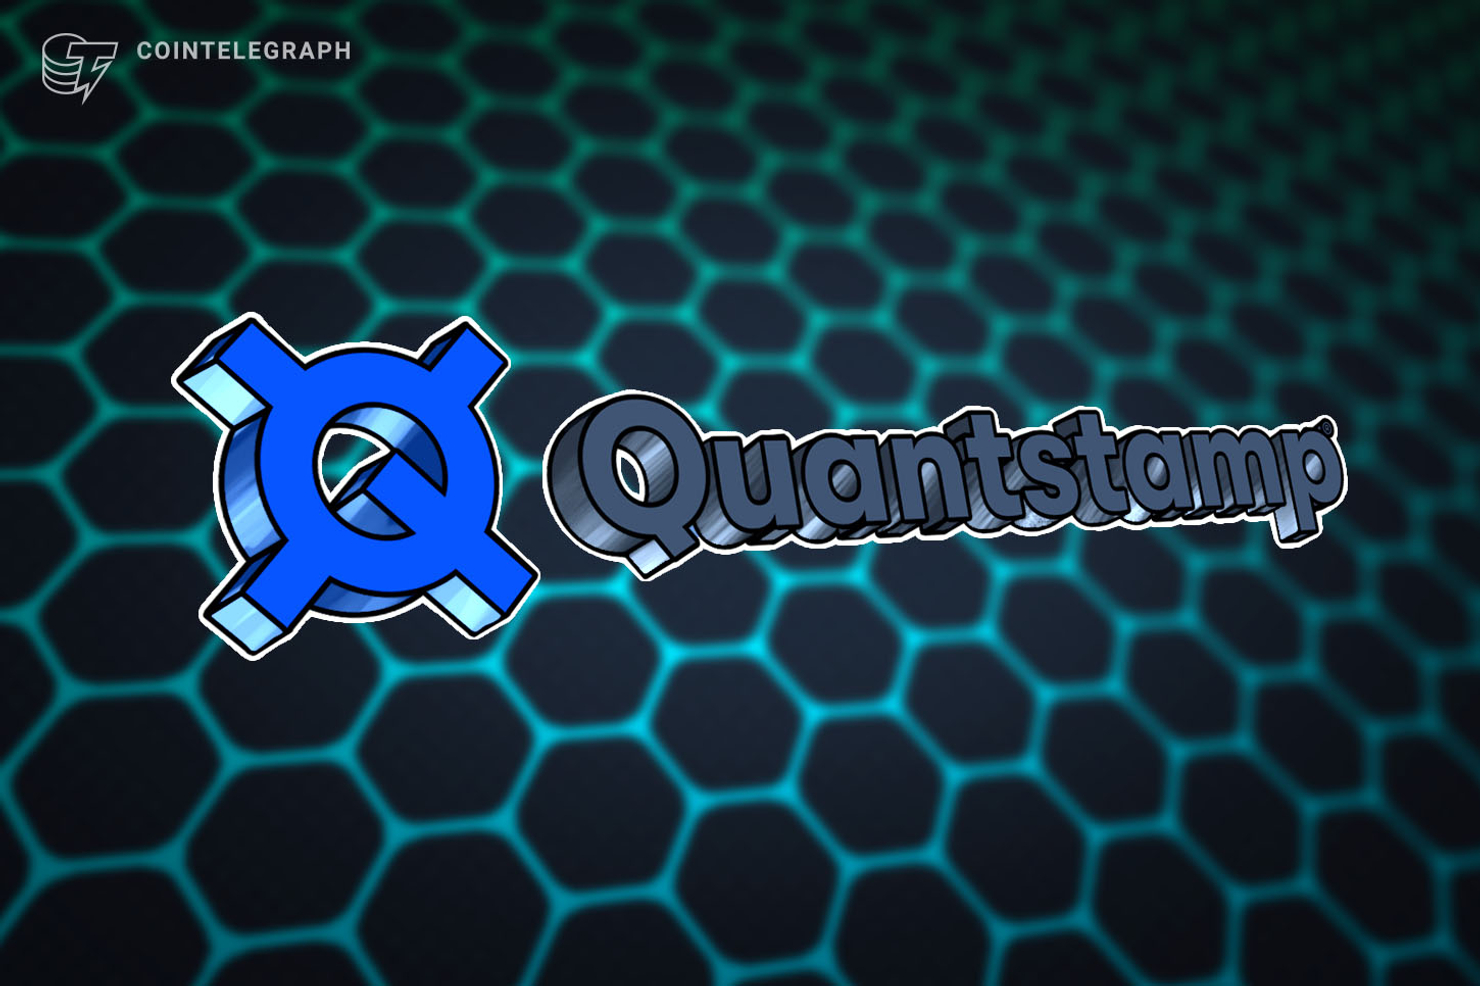 <bold>Quantstamp</bold> Releases Decentralized Security Network with Staking and Improved Transparency